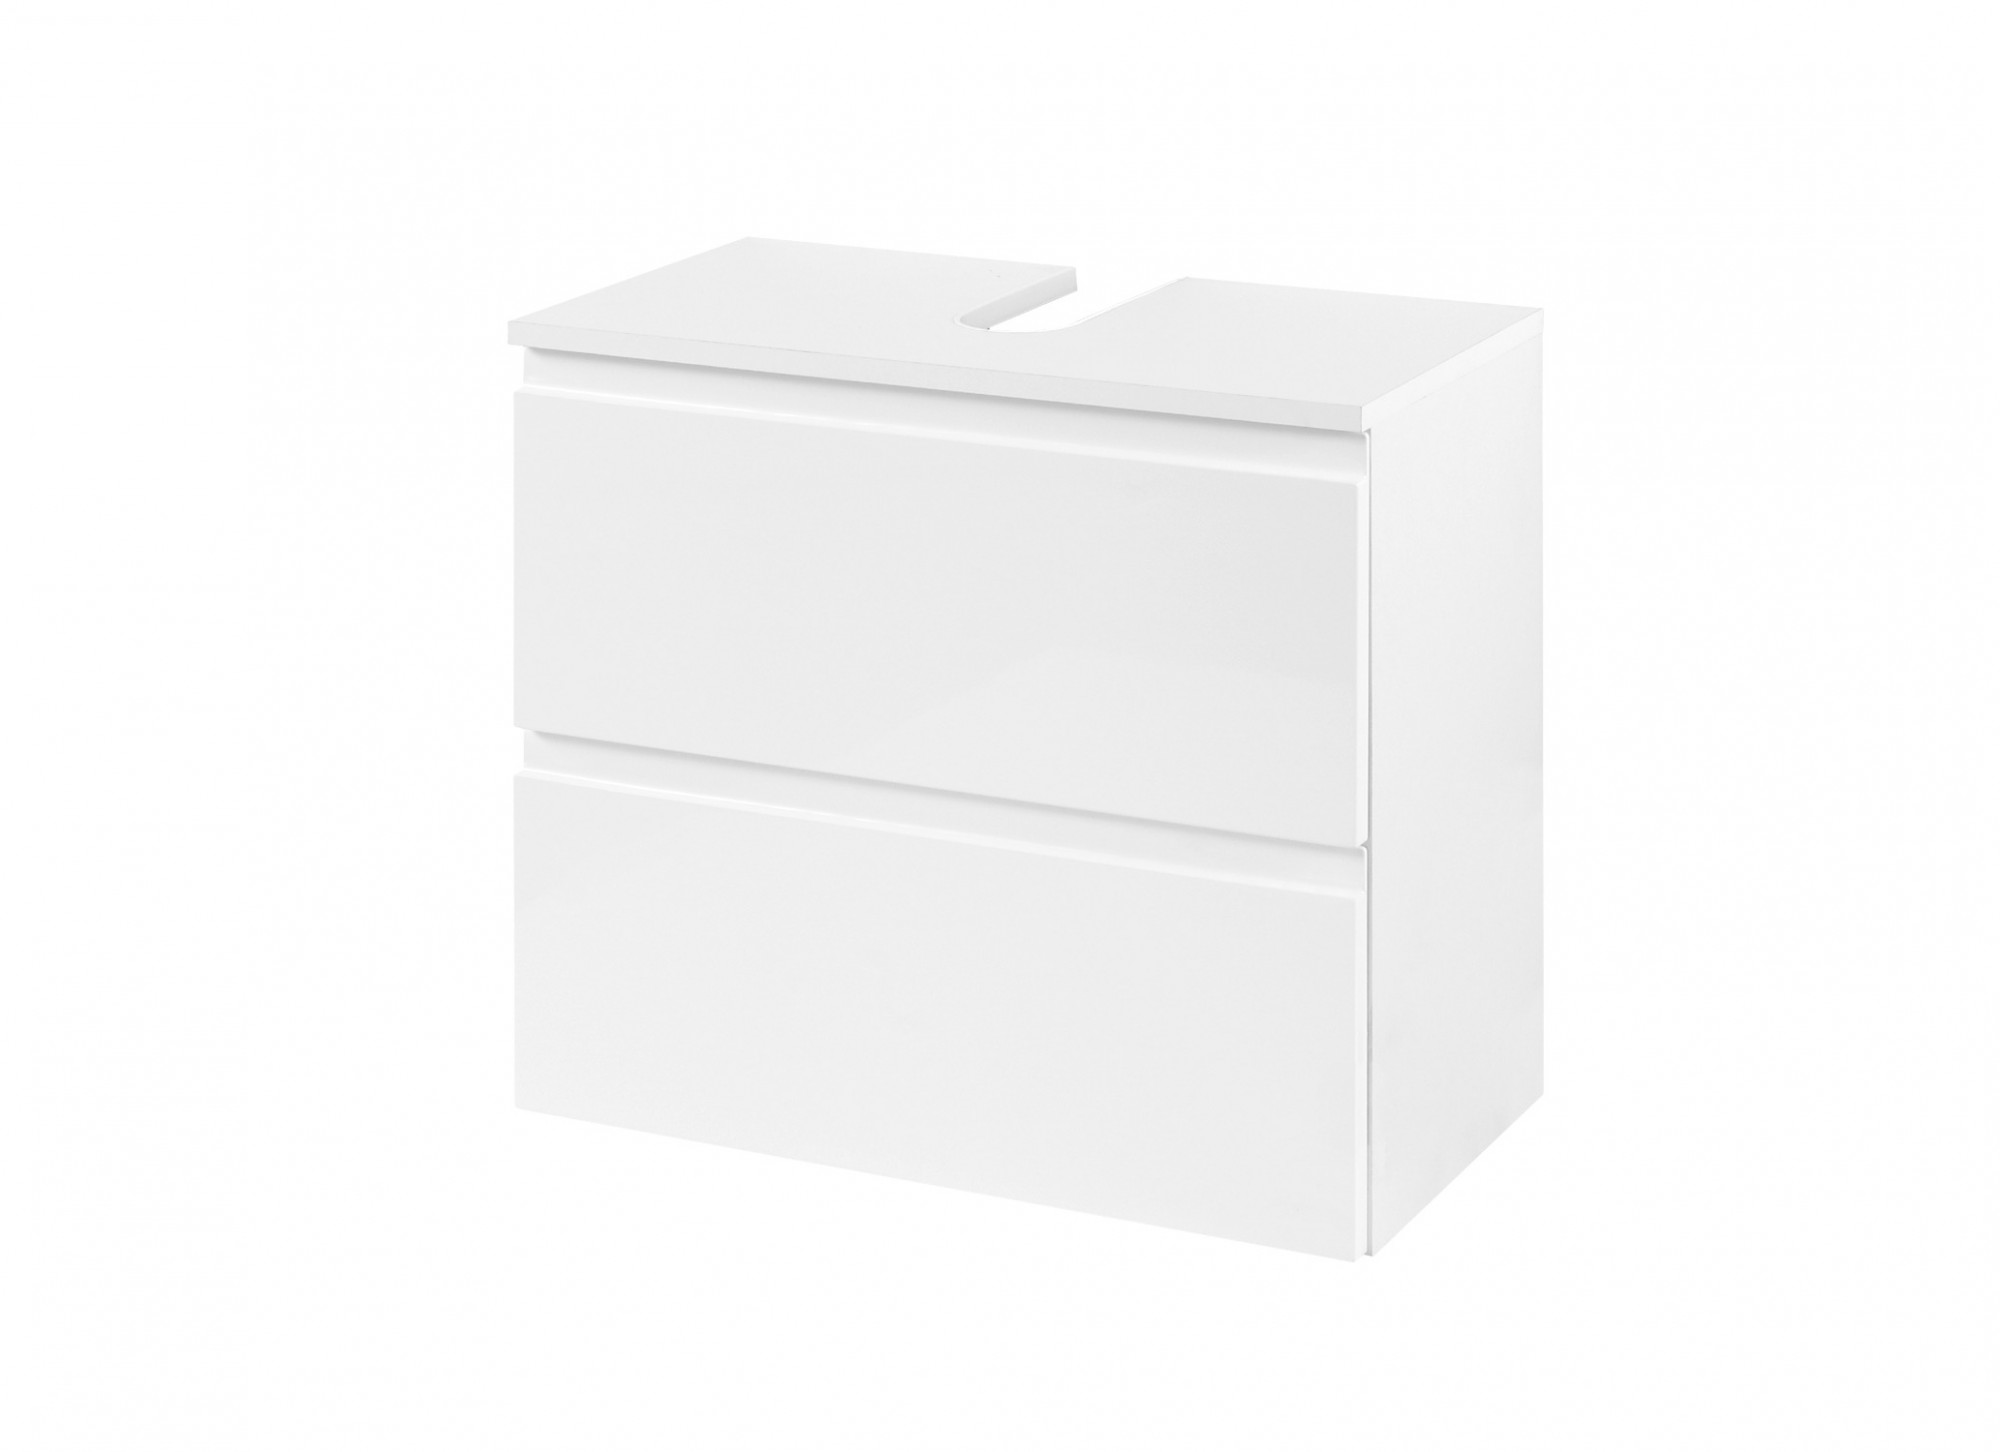 waschbeckenunterschrank cardiff waschtisch unterschrank badschrank 60 cm weiss ebay. Black Bedroom Furniture Sets. Home Design Ideas